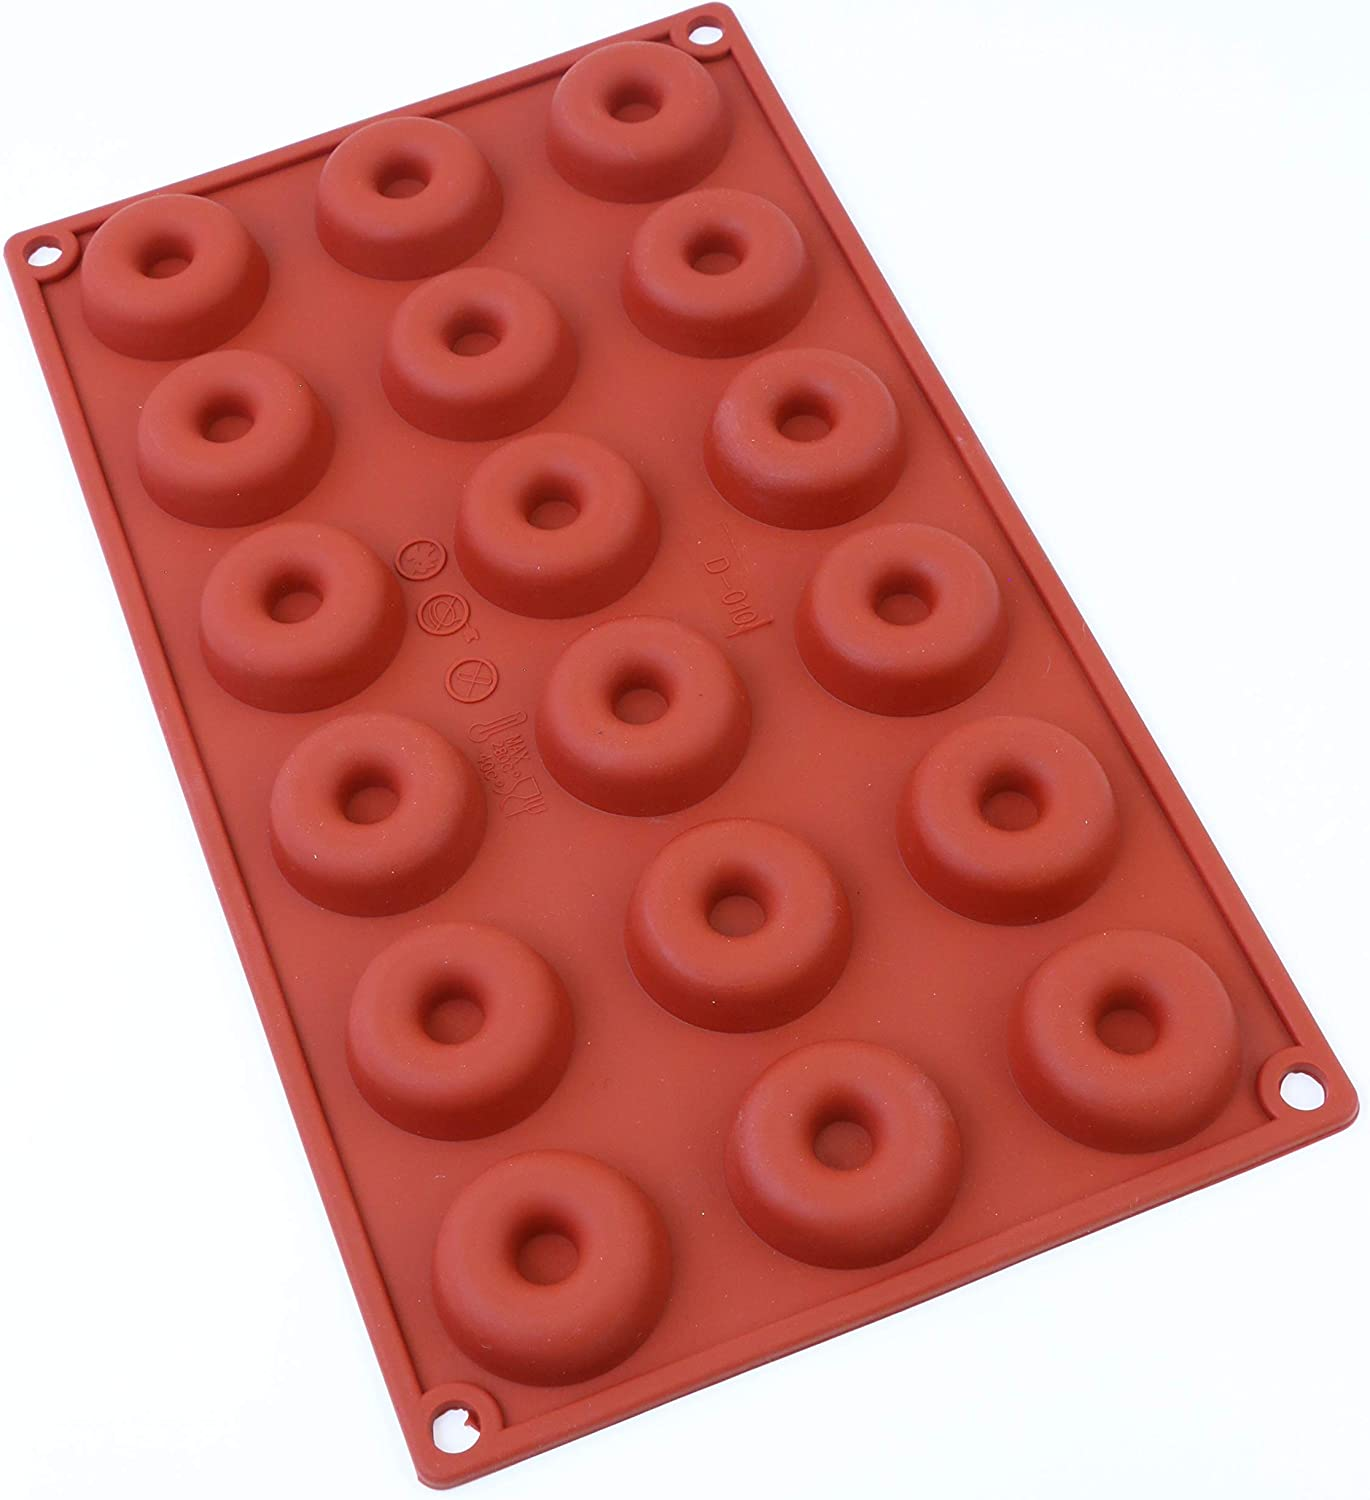 Oggibox 18-Cavity Mini Donut Pan, Muffin Cups, Cake Mold, Biscuit Mold, for Donut Cake Bread Cupcake Cornbread Muffin Cups doughnuts Pan and More